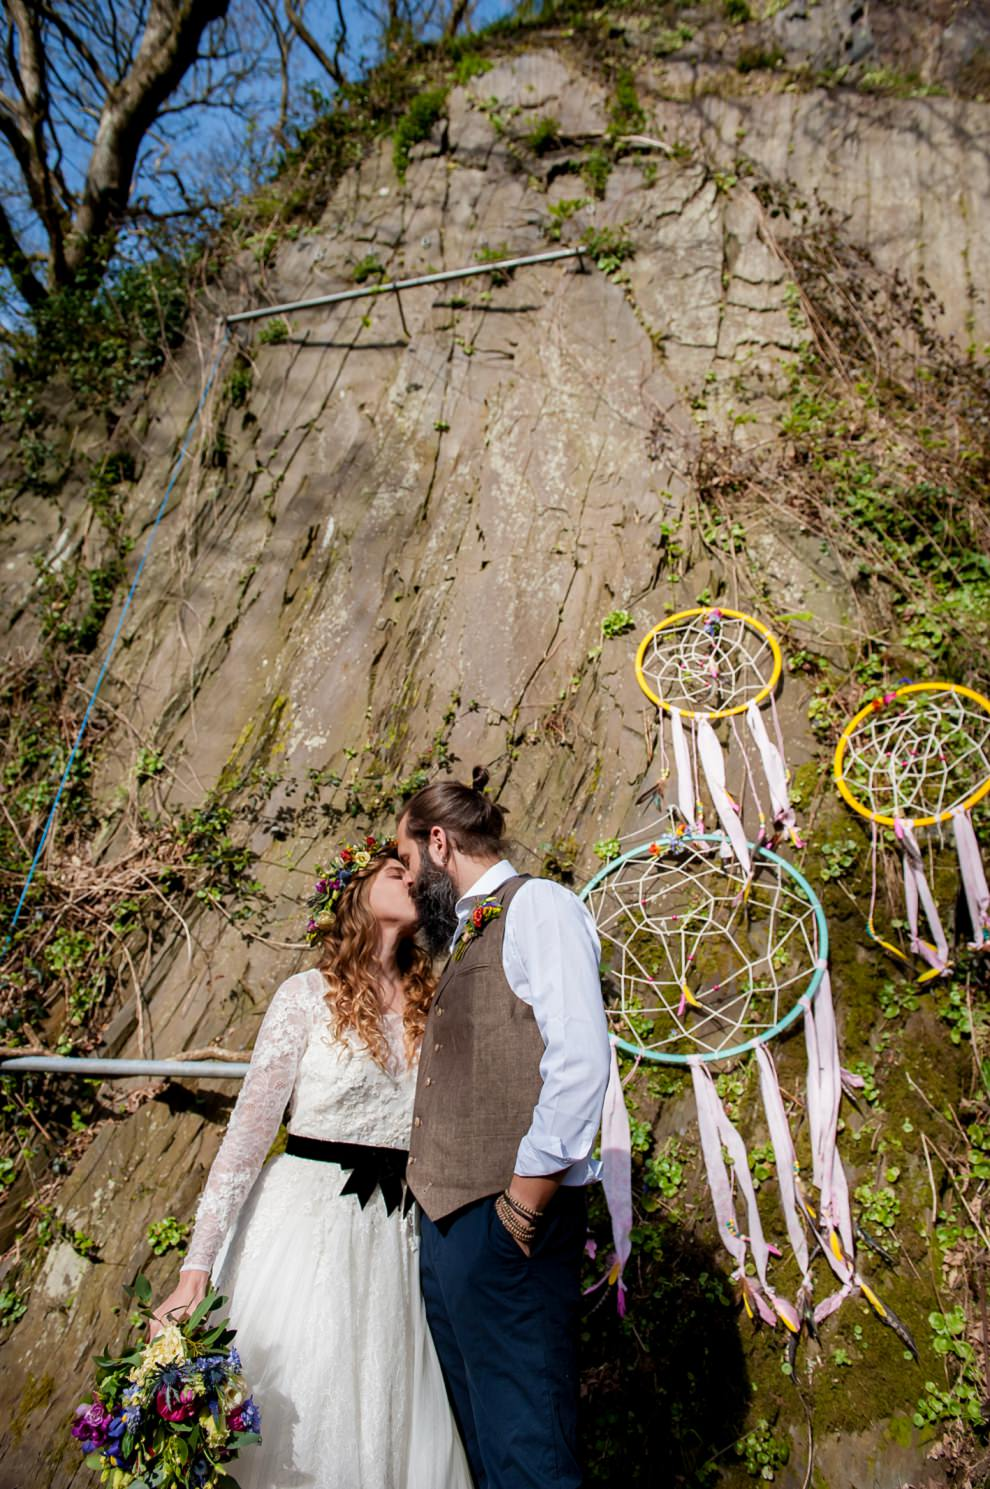 Fforest Wedding in the quarry